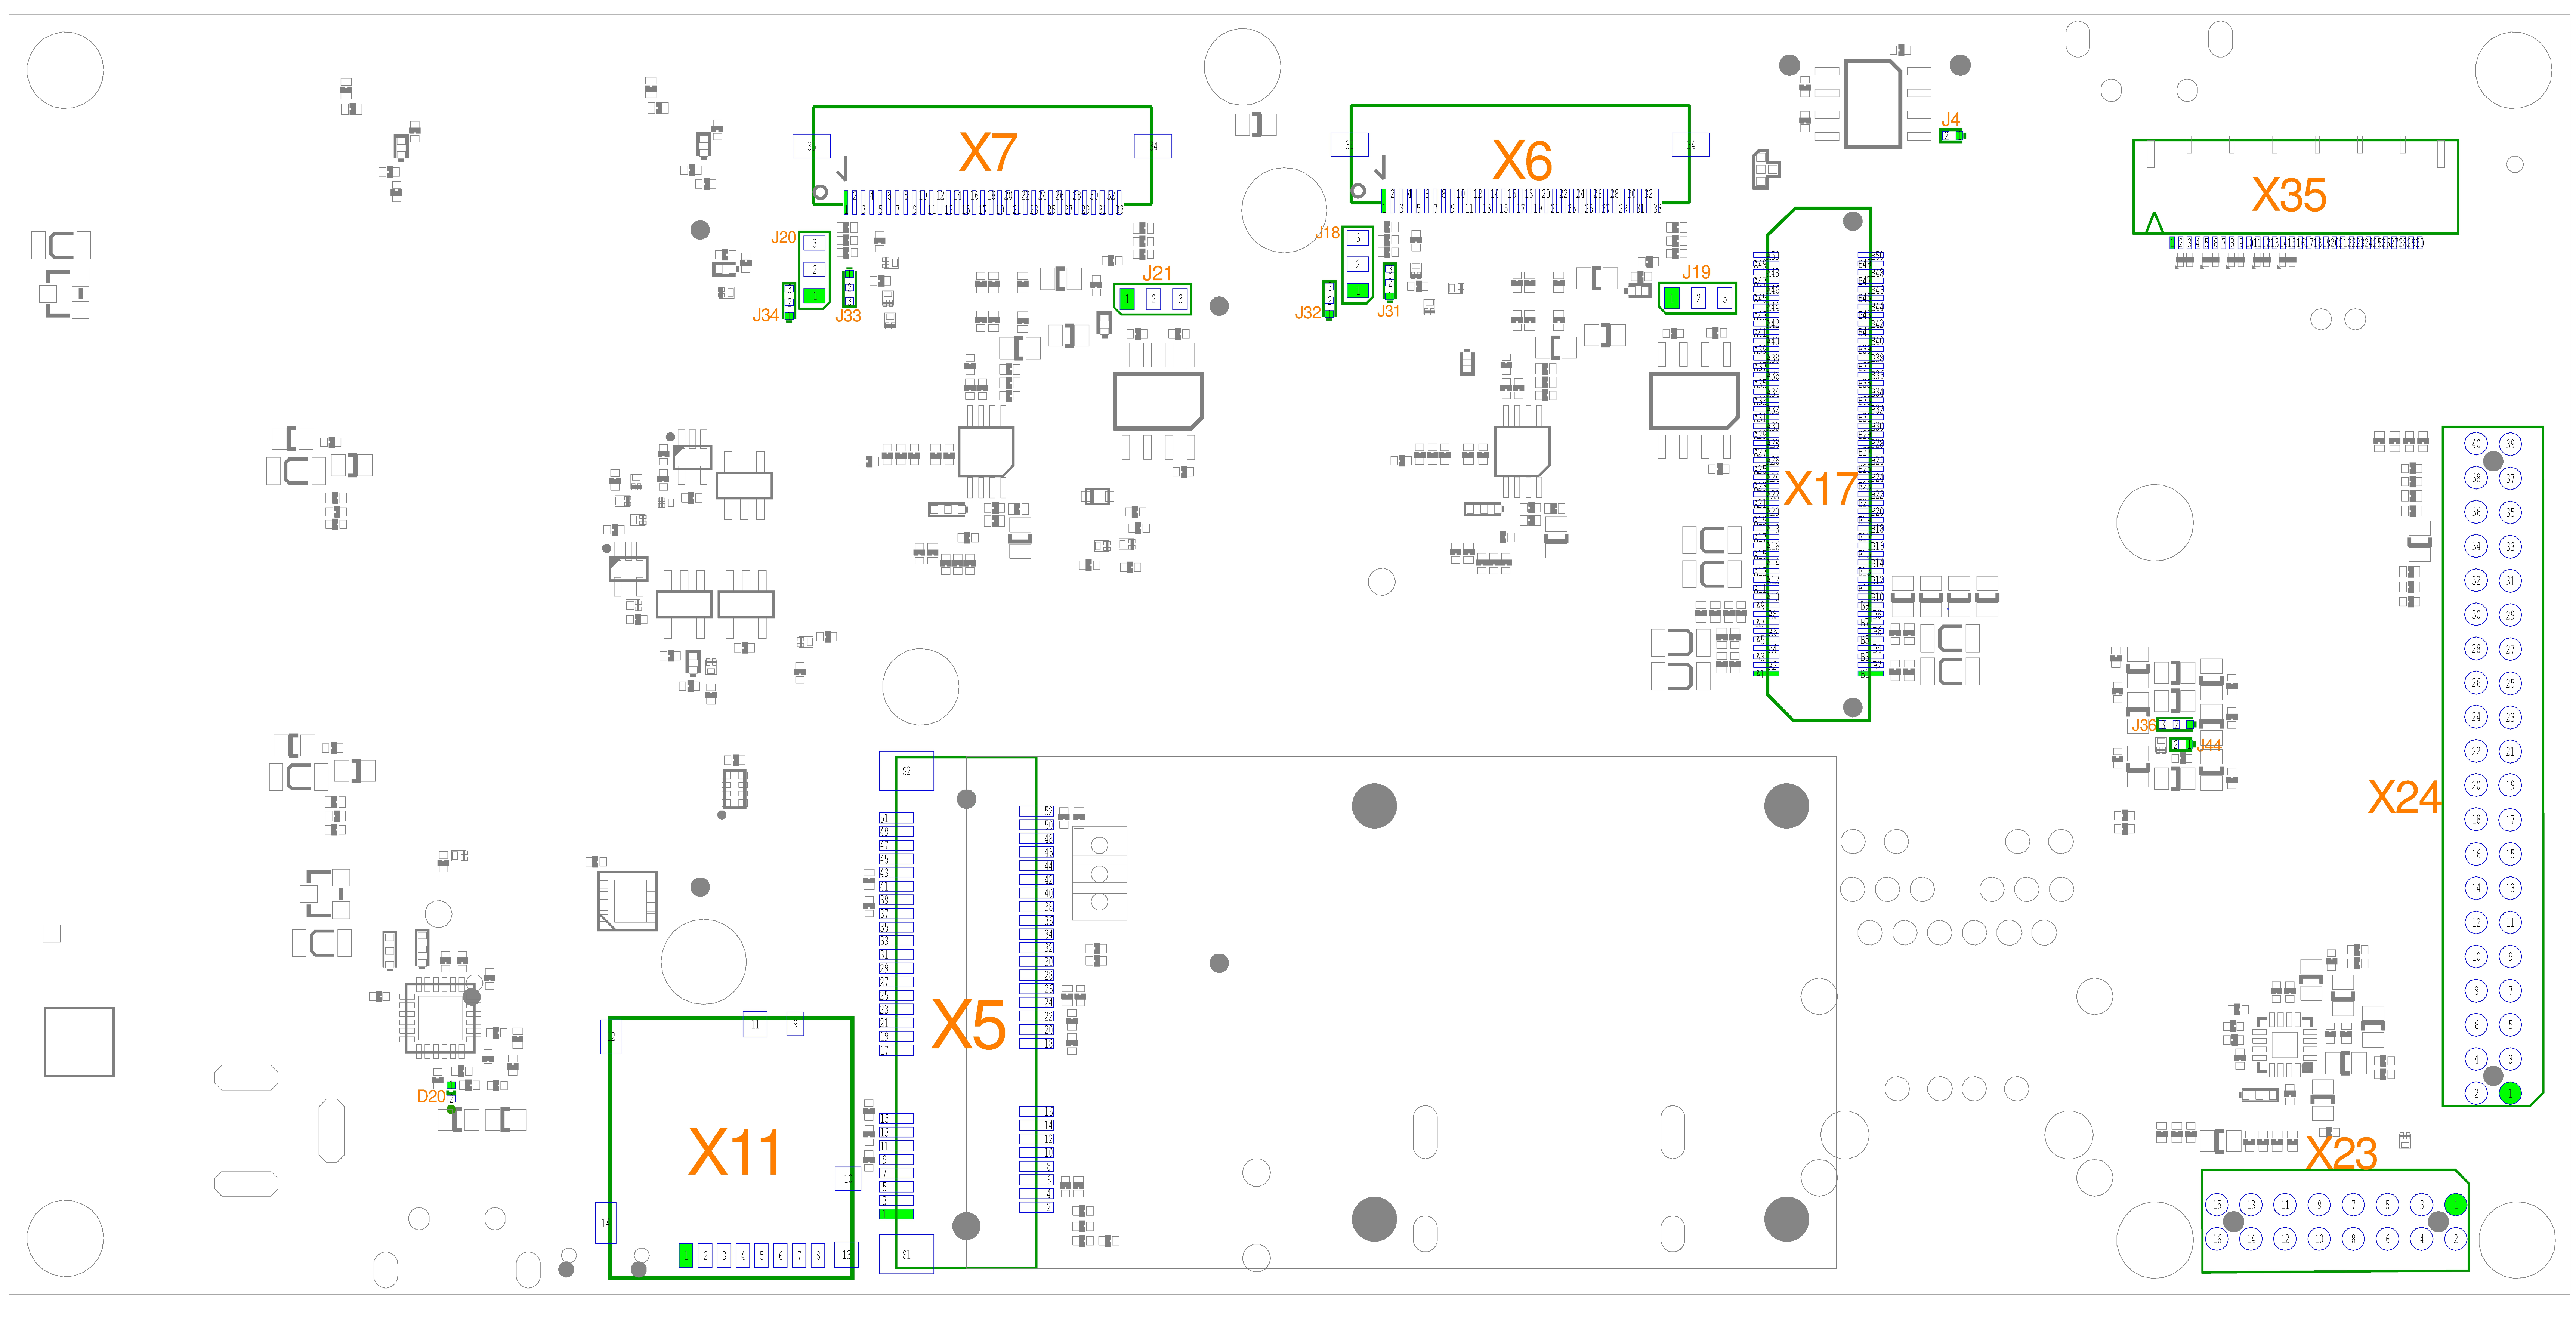 phyBOARD-Nunki i.MX 6 Component Placement (Bottom)